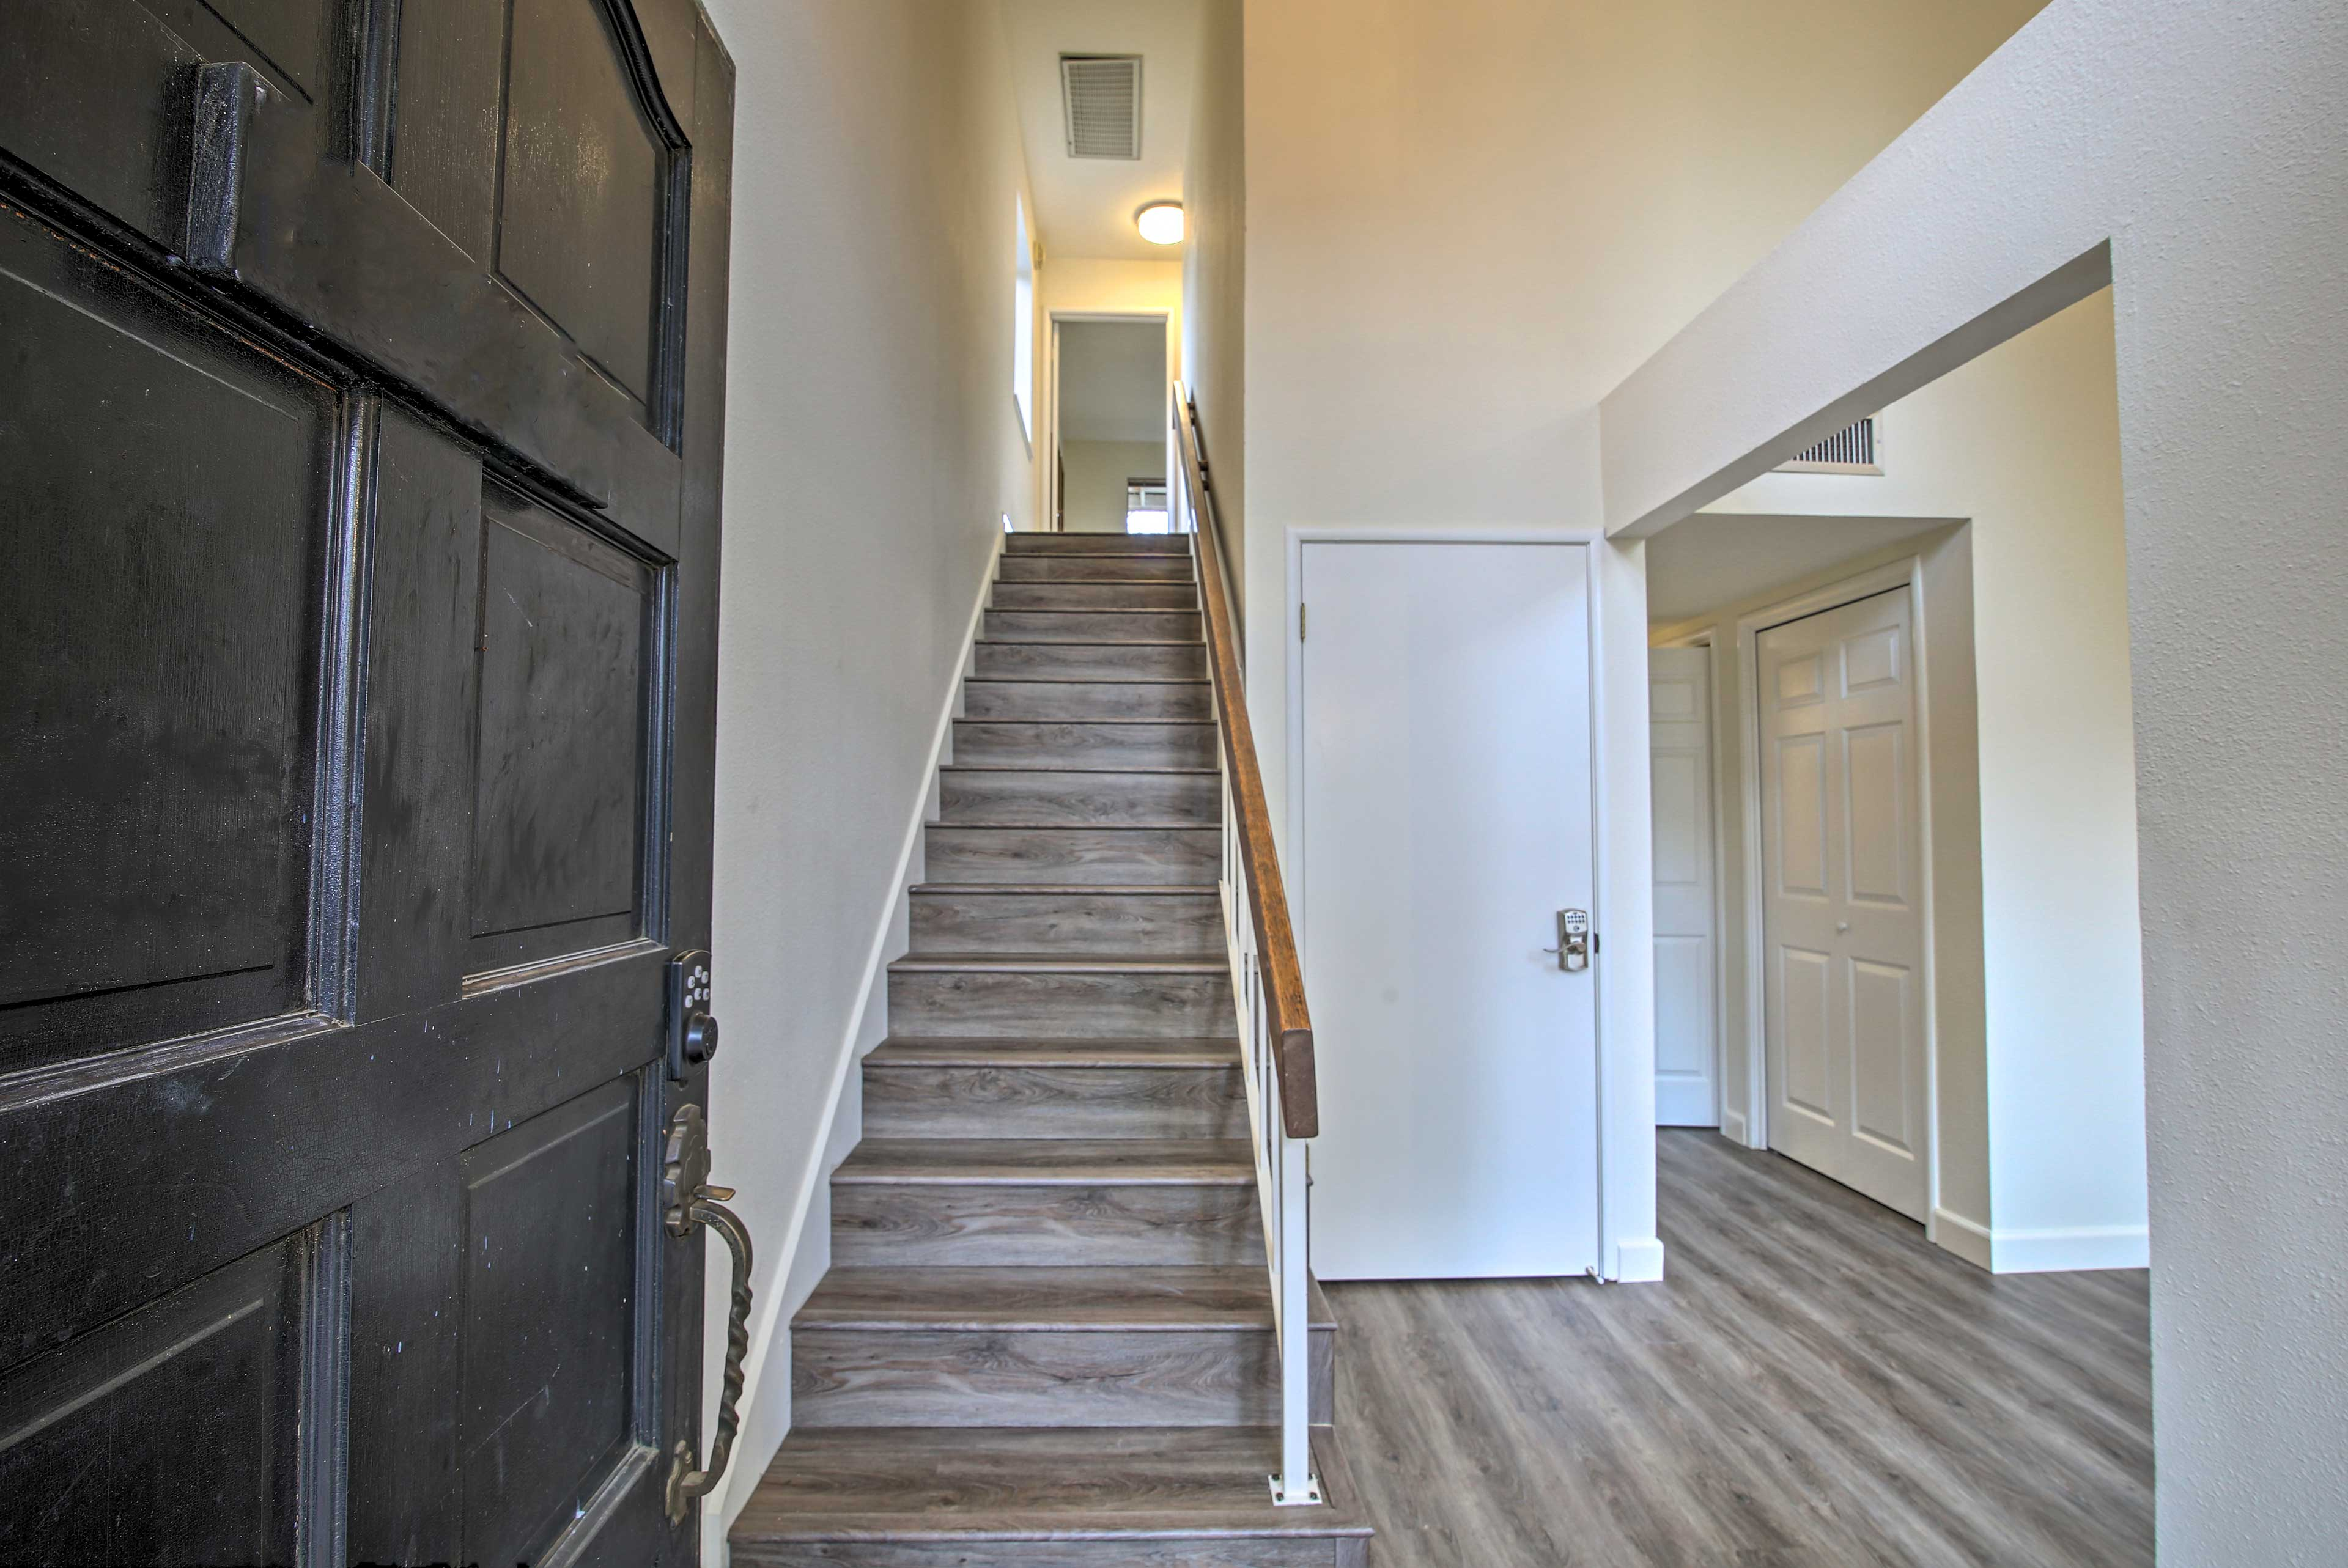 All bedrooms are located upstairs.